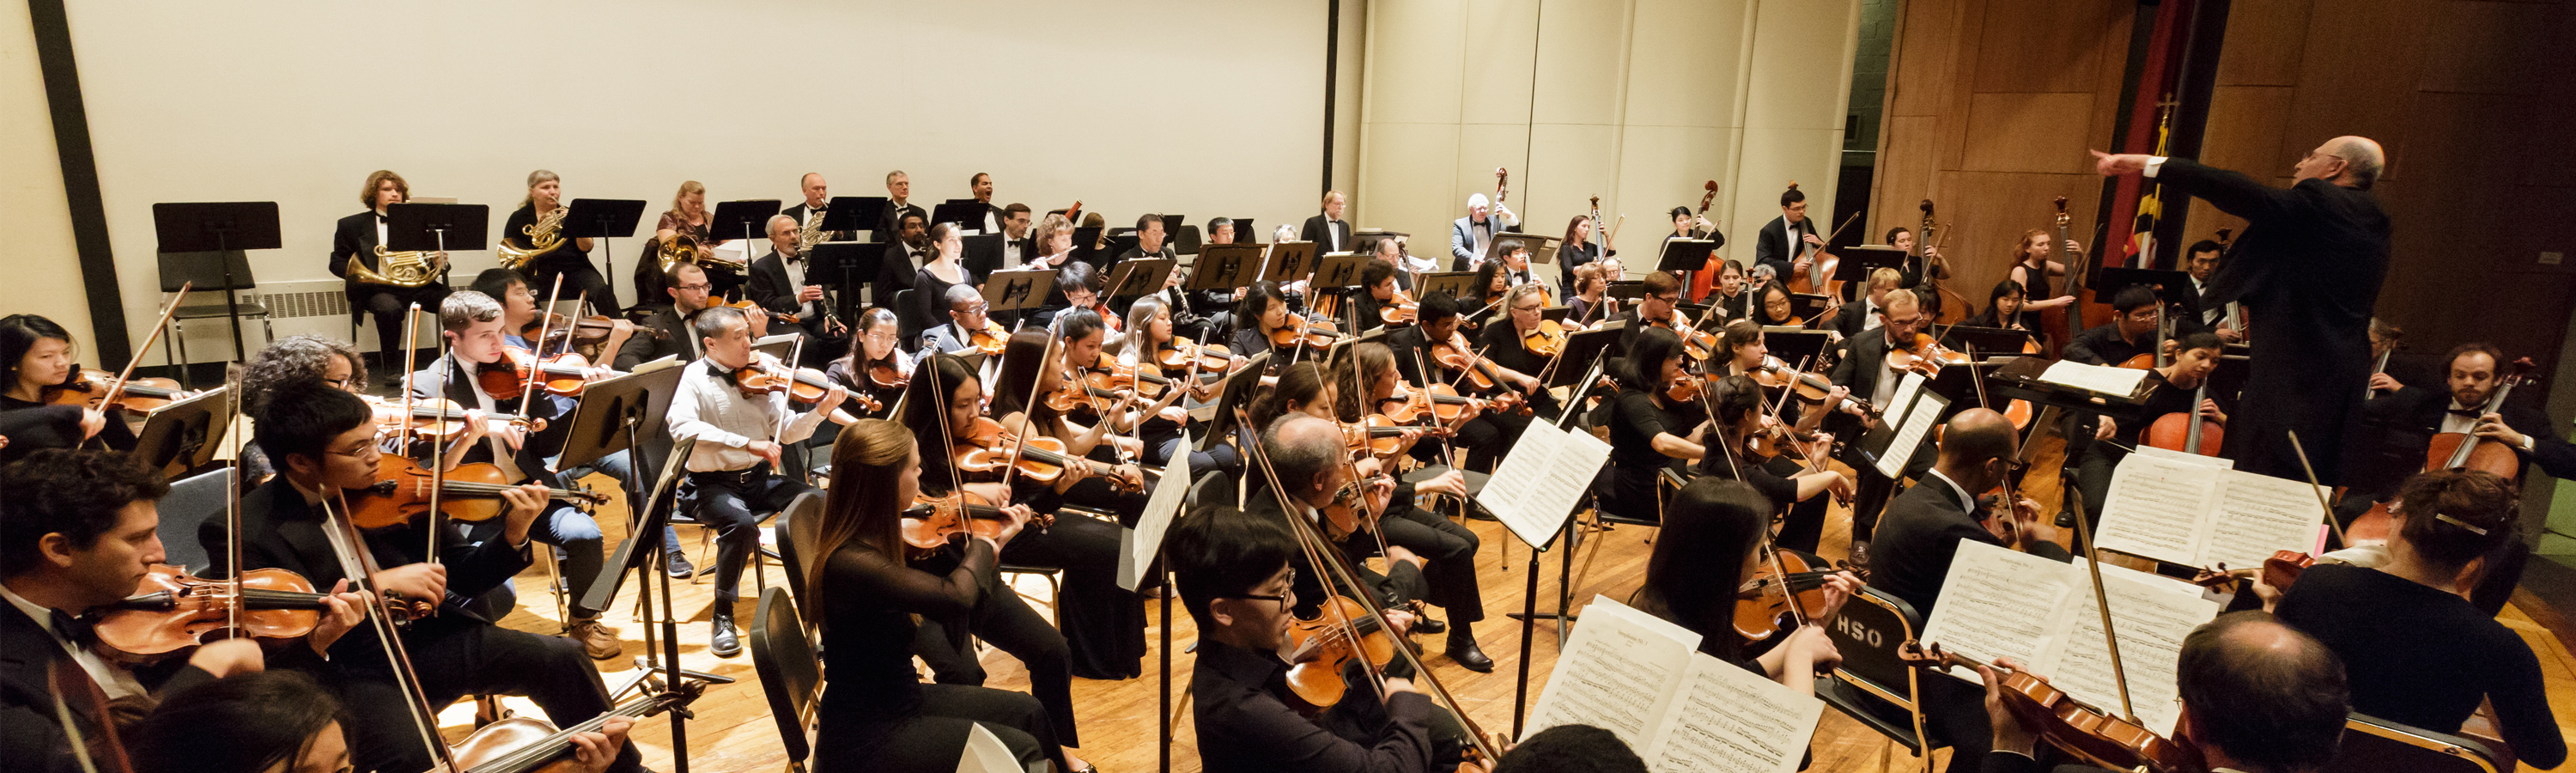 Hopkins Symphony Orchestra Evenings - Star-Crossed: Tchaikovsky's Romeo and Juliet and Bernstein's Symphonic Dances from West Side Story  header image